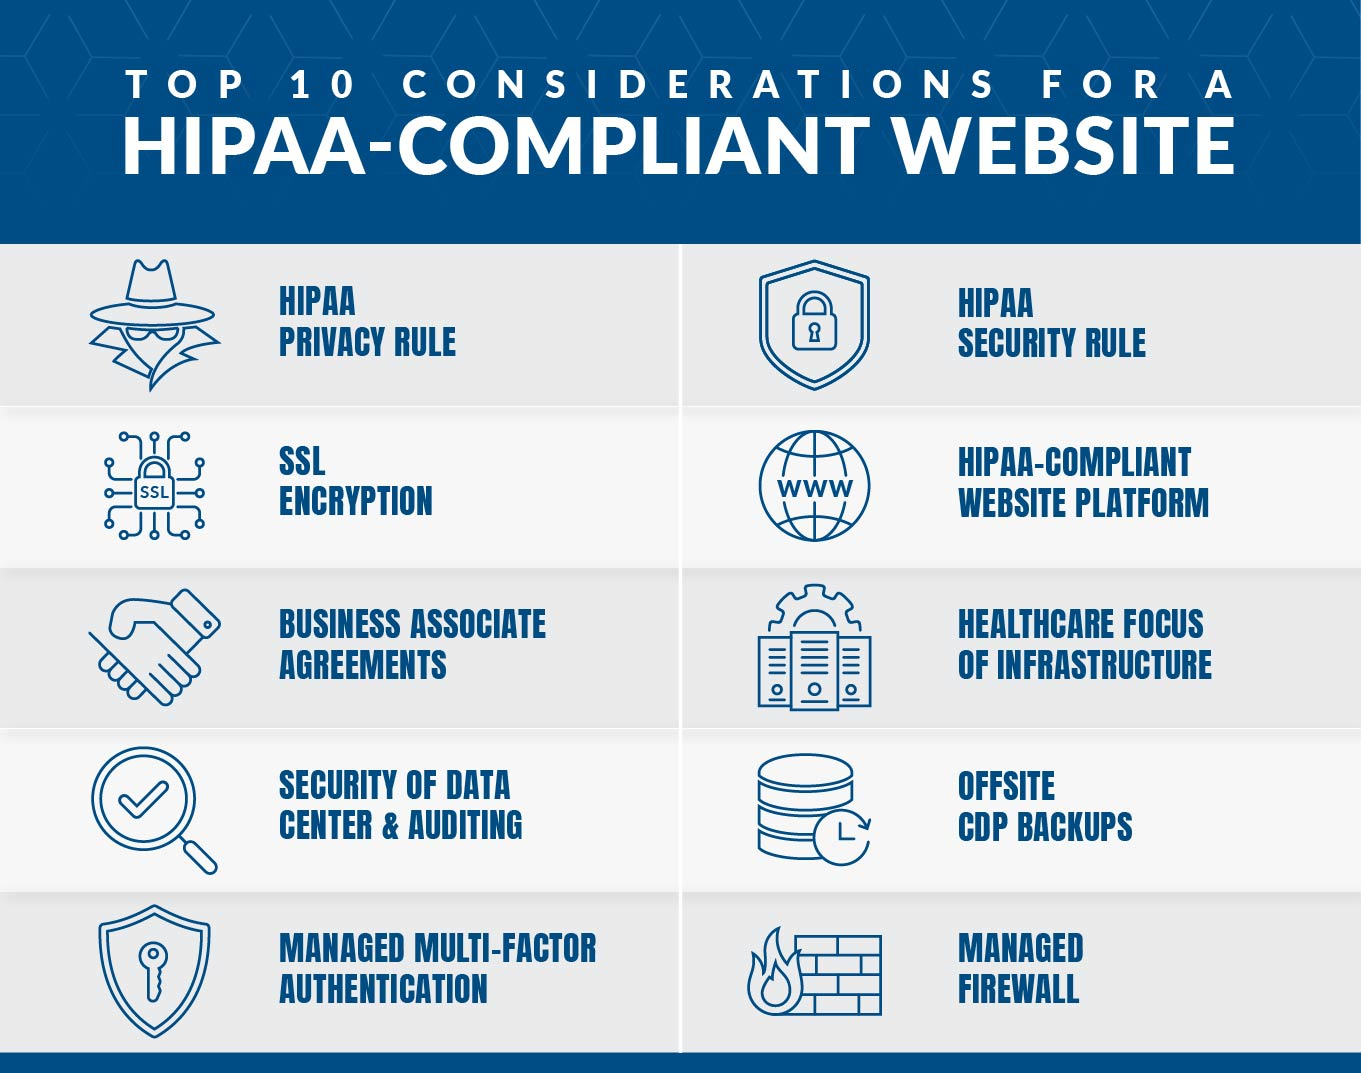 HIPAA-Compliant Website